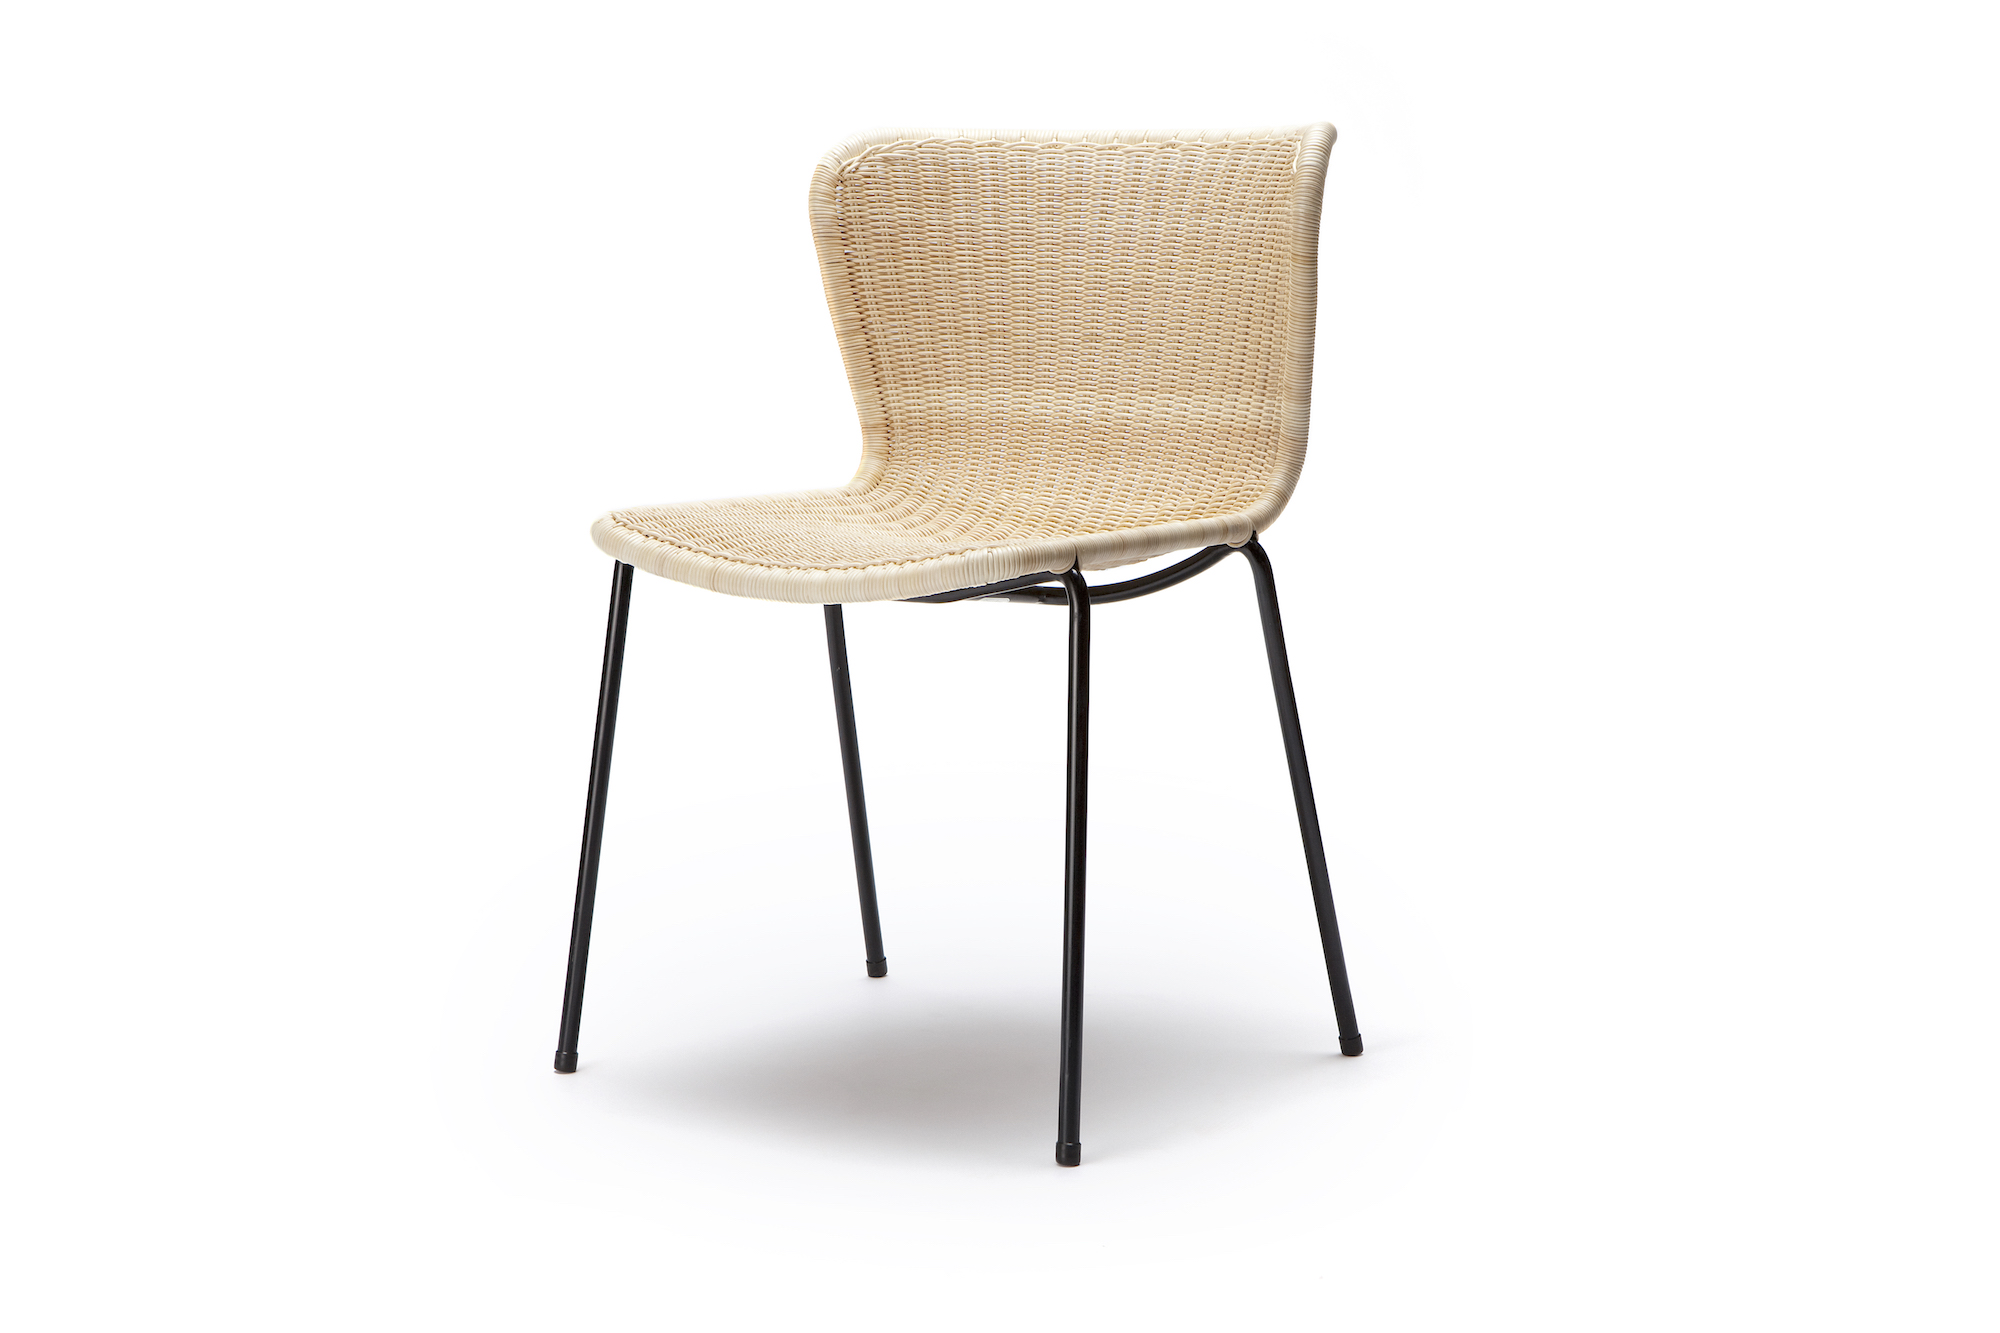 Indoor C603 Chair - Natural Rattan